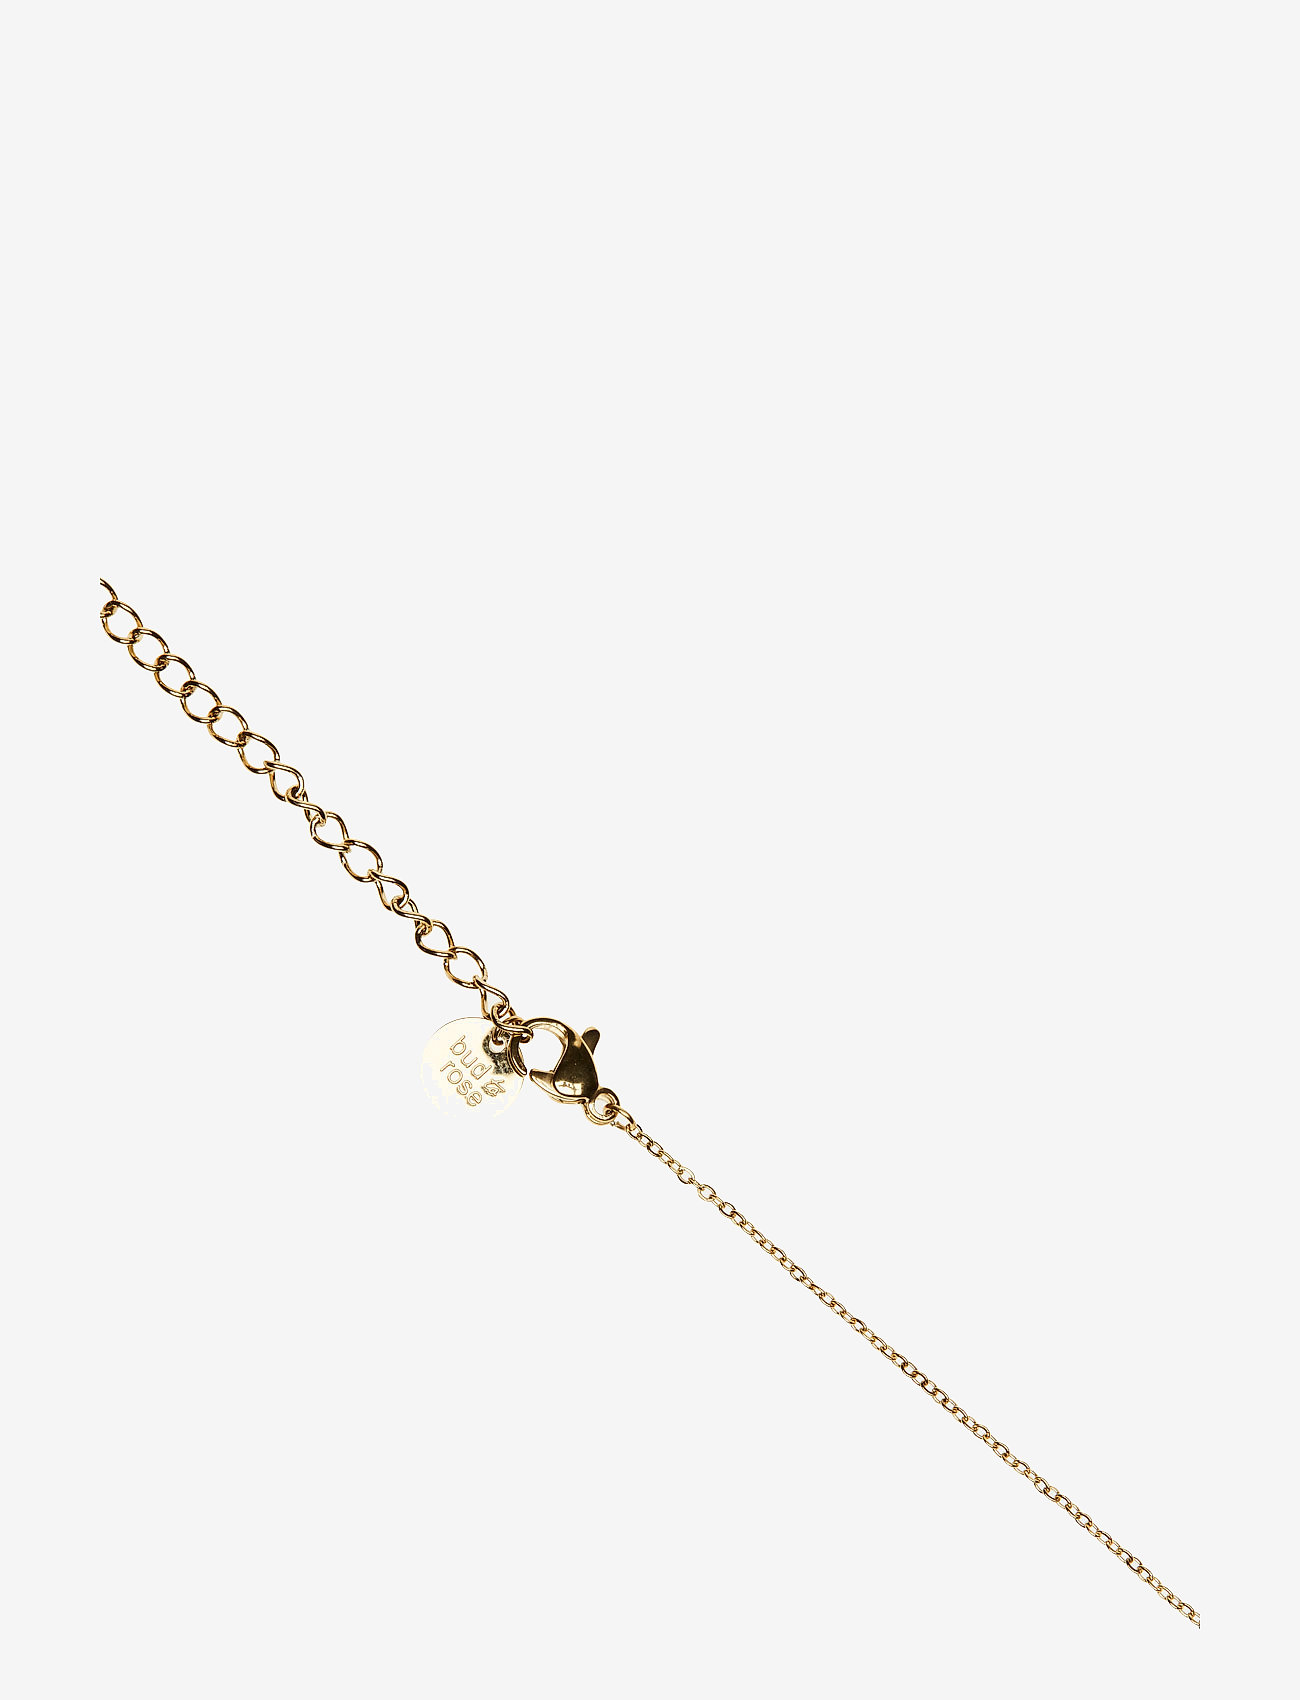 Bud to rose - Dove Necklace Steel - kettingen met hanger - gold - 1